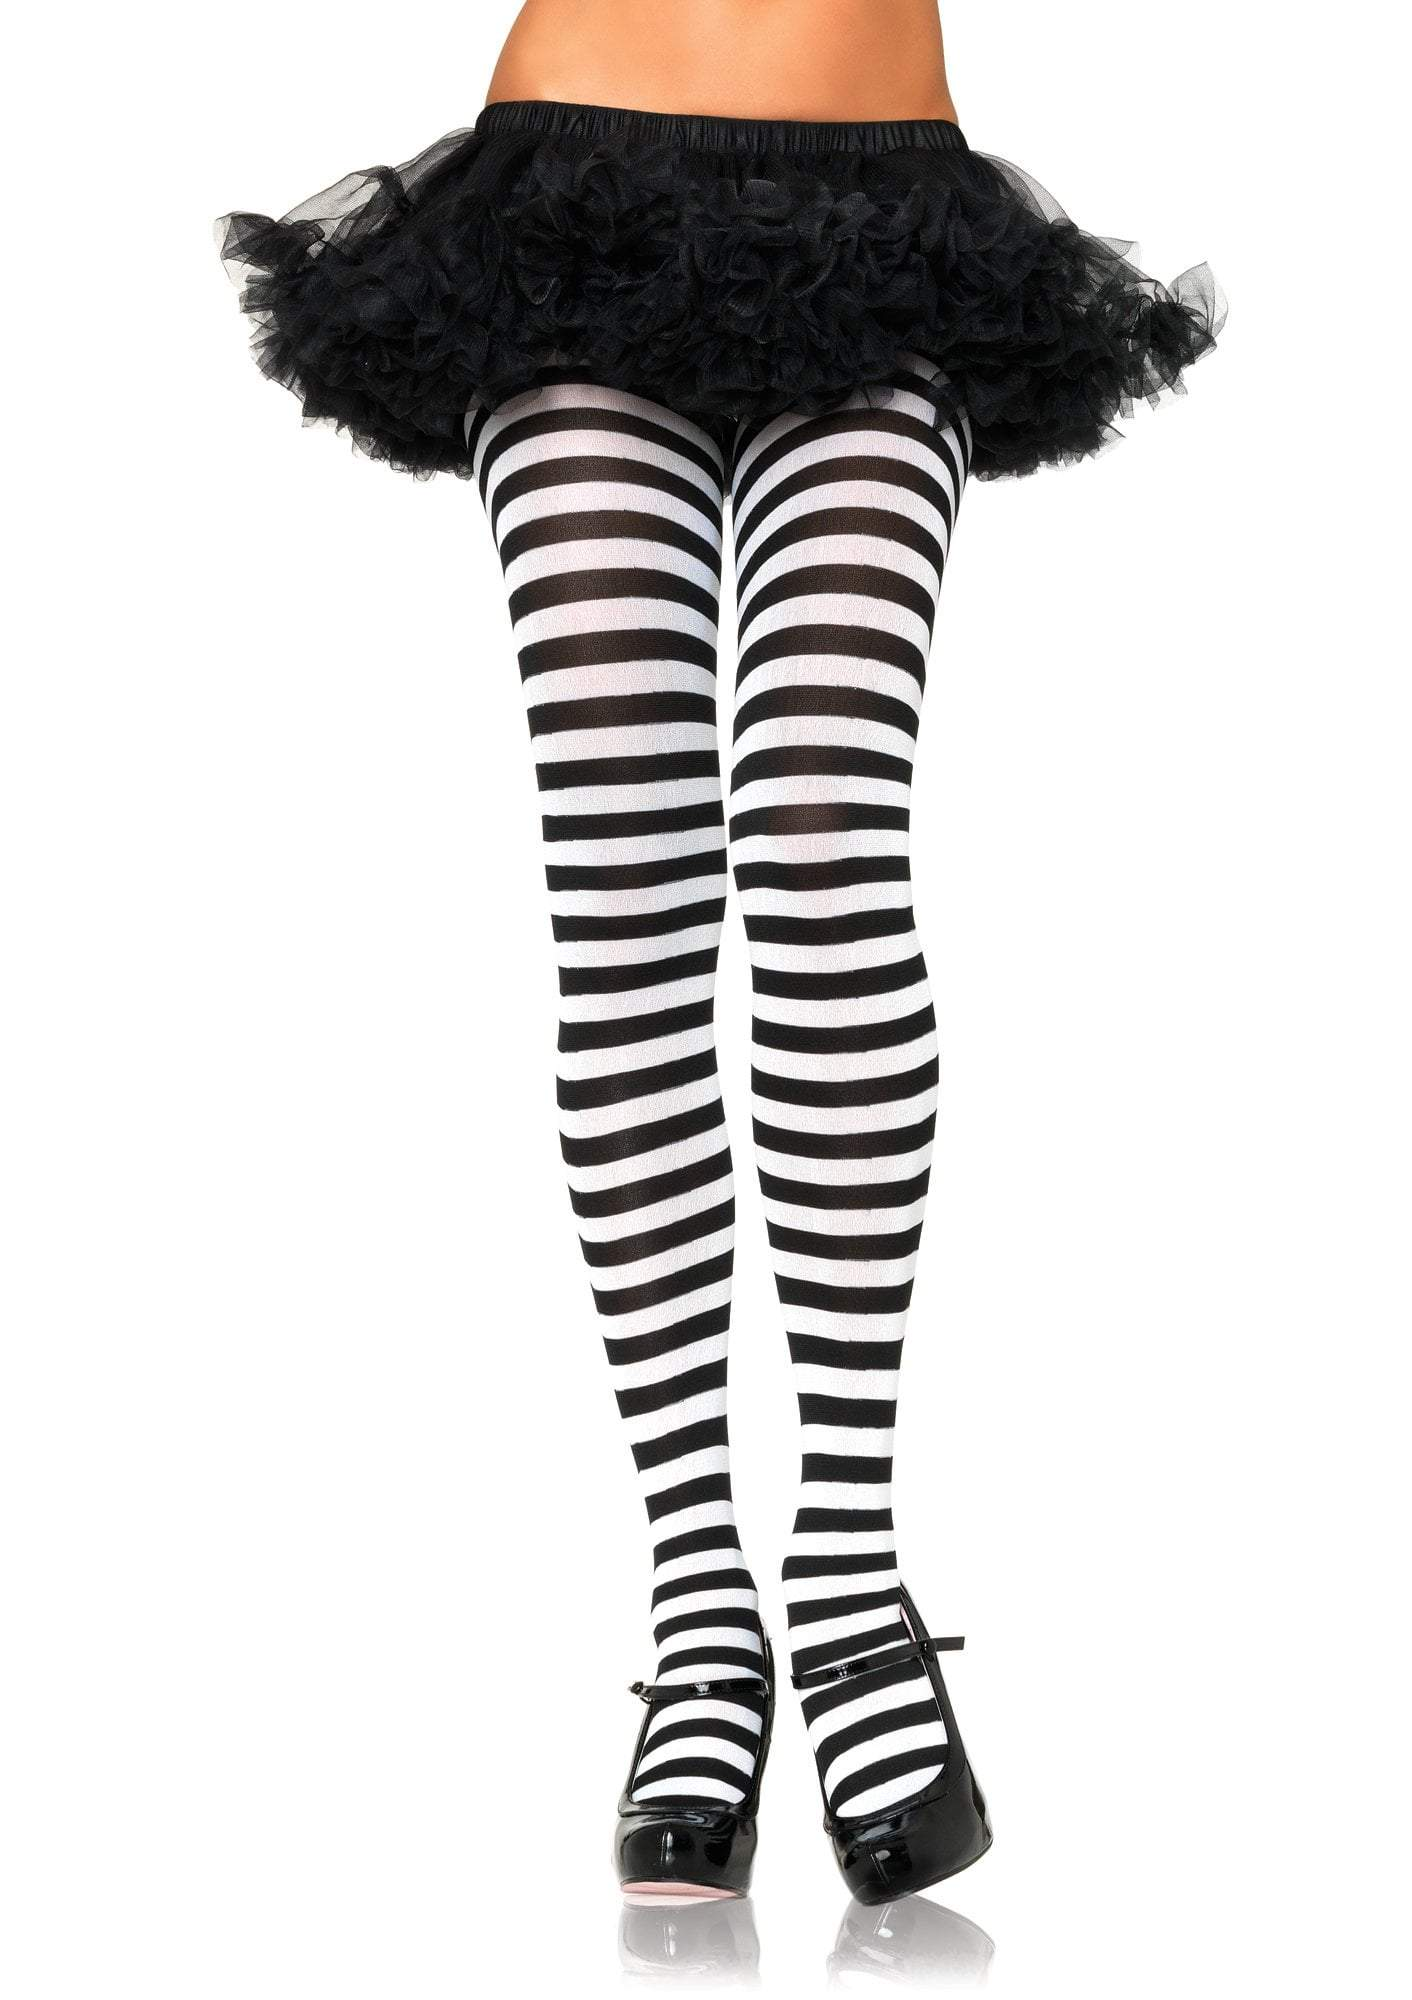 Leg Avenue Costume Accessories BLACK/WHITE / O/S Adult Nylon Stripe Tights